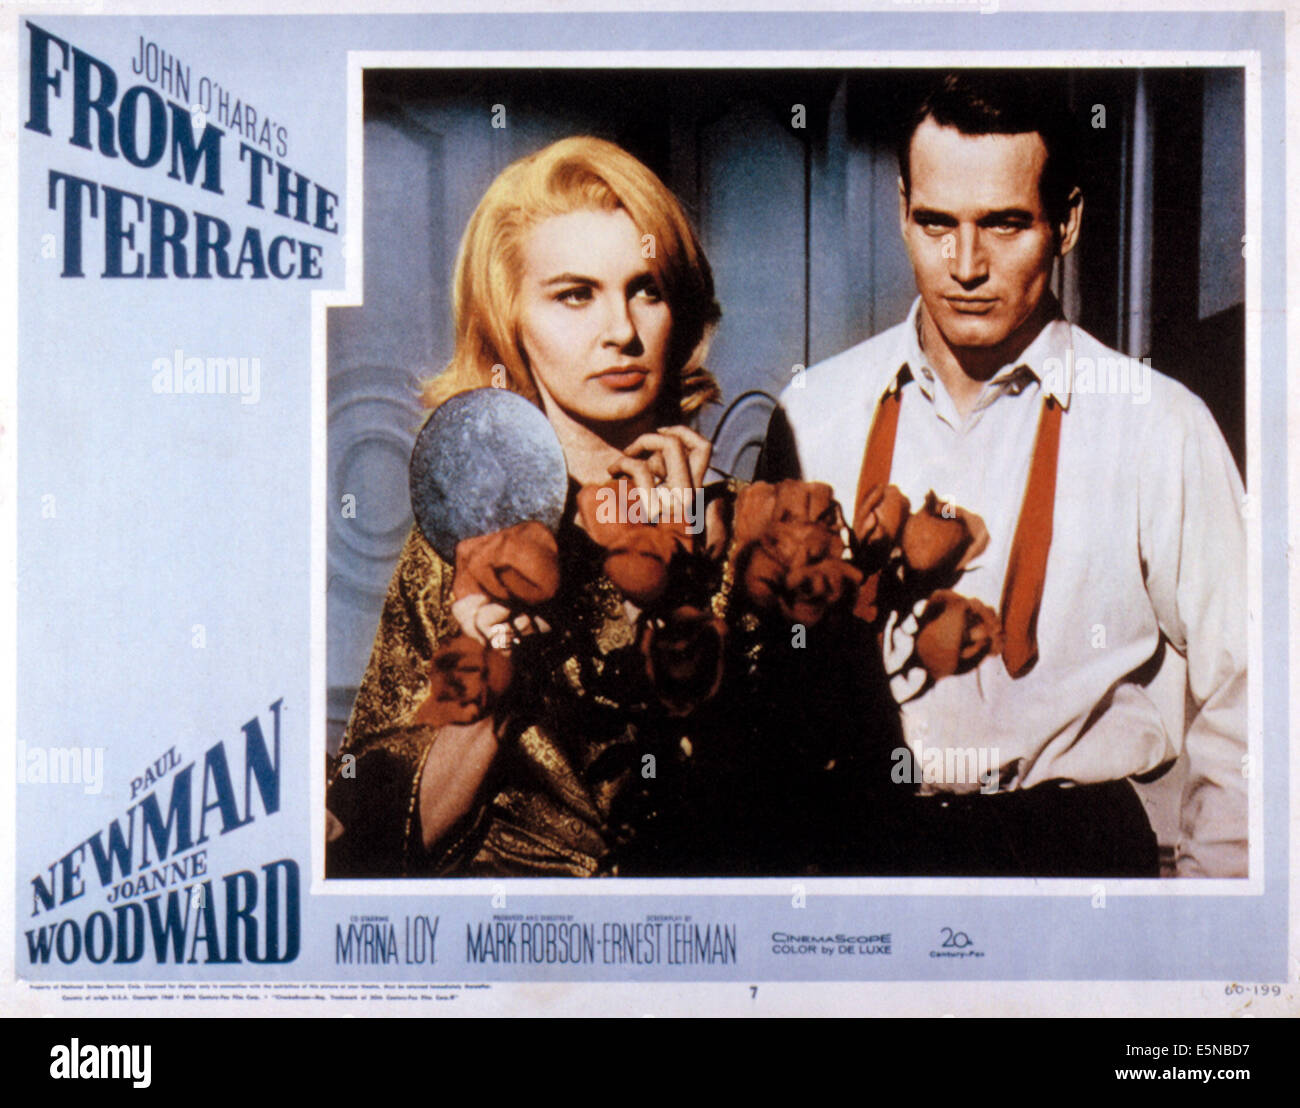 From the terrace joanne woodward paul newman 1960 tm for Movies at the terrace